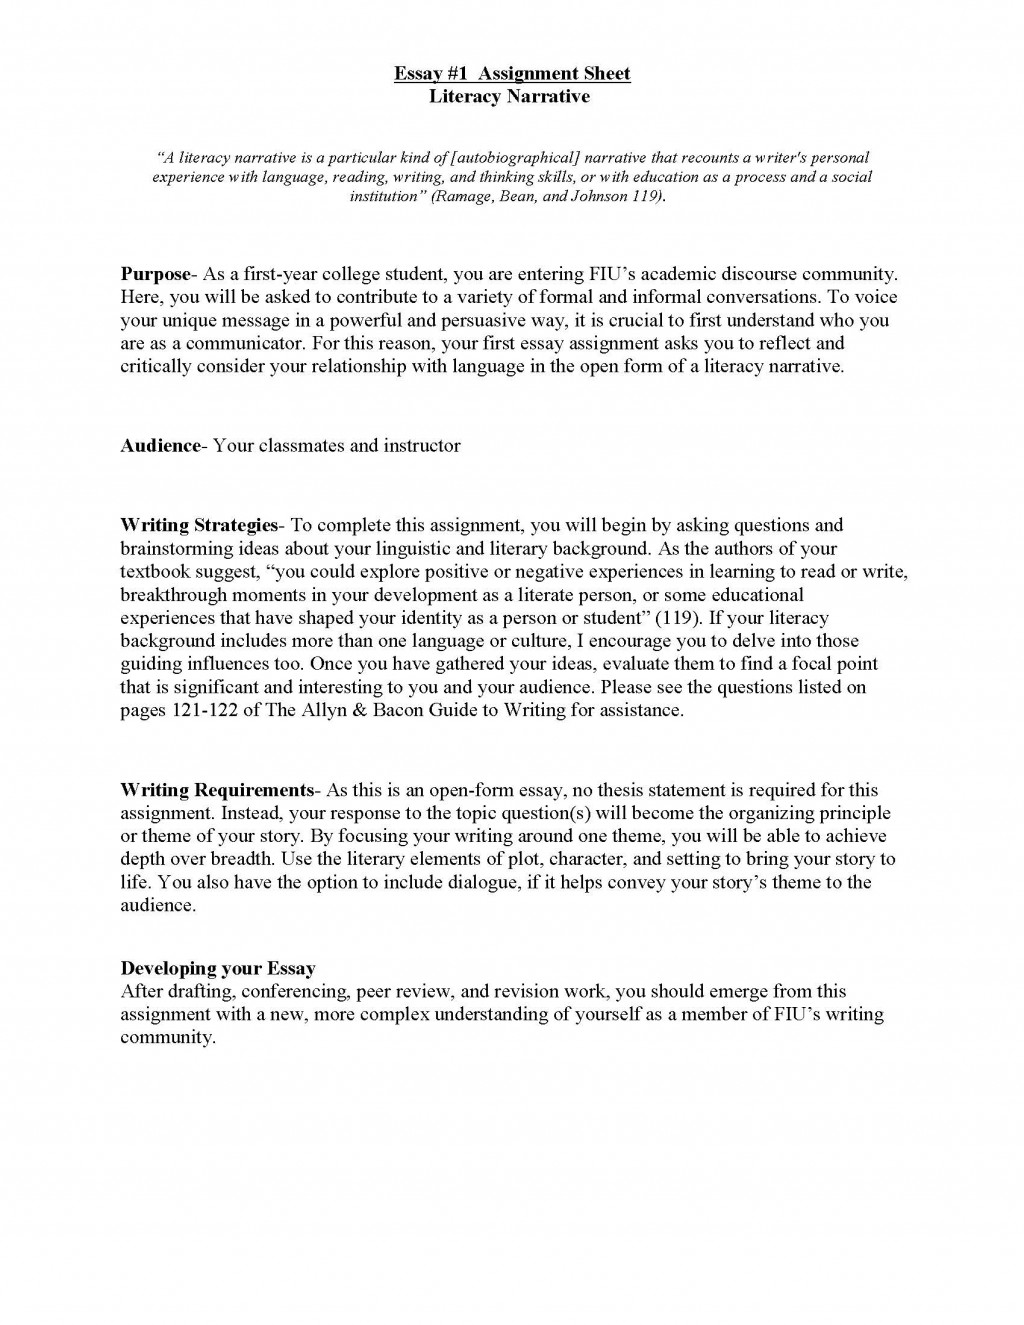 017 Literacy Narrative Unit Assignment Spring 2012 Page 1s Of Essays Essay Rare Examples Writing College For Students High School Large